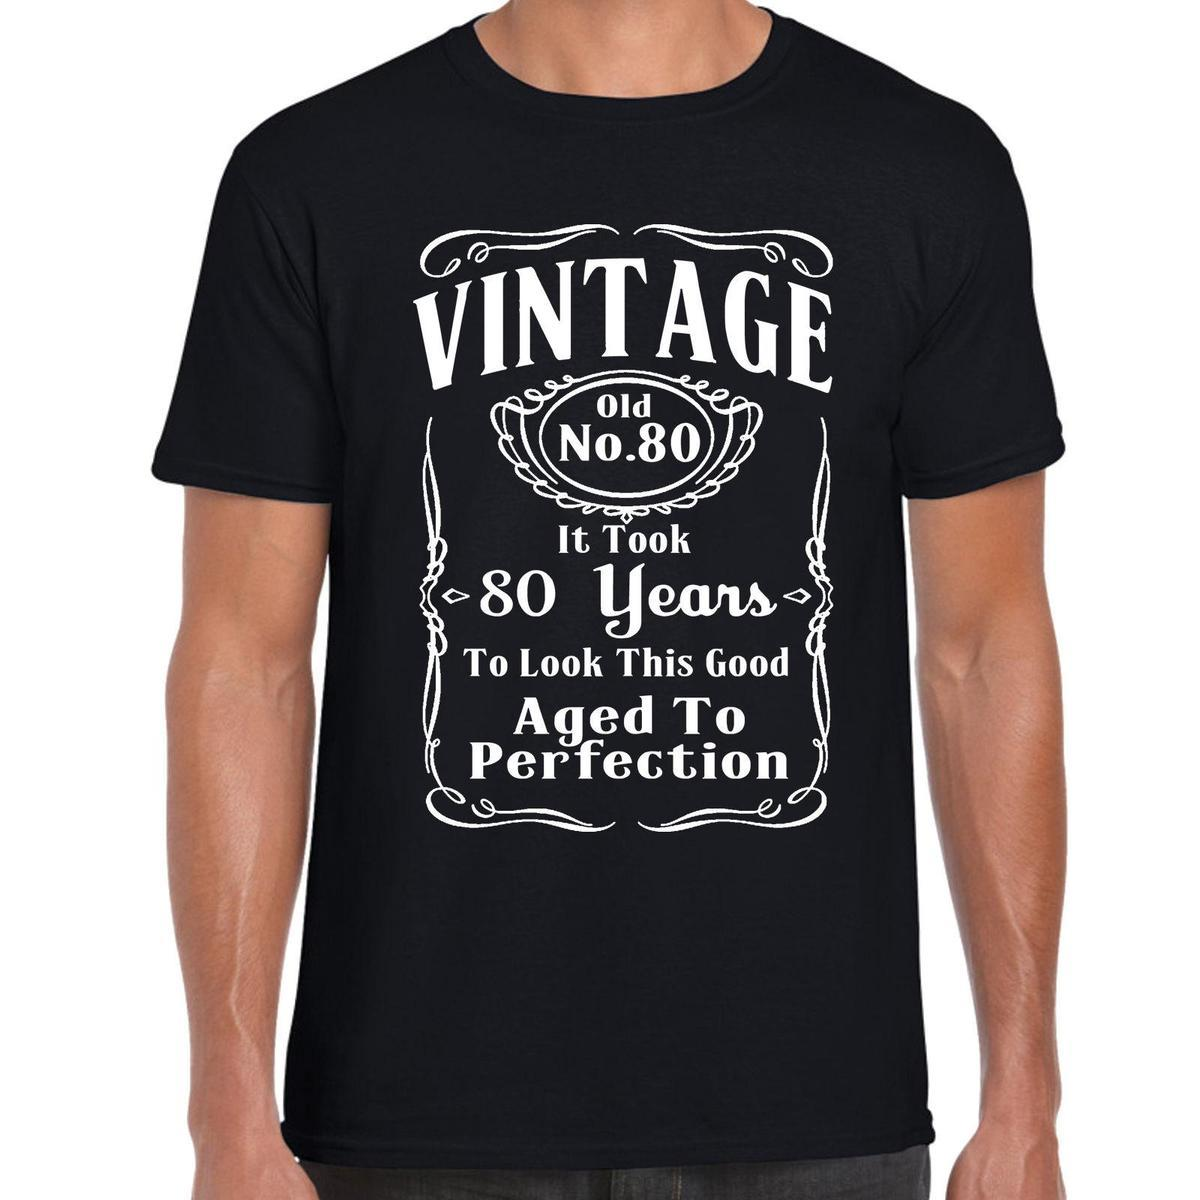 Grabmybits Vintage 80th Birthday T Shirt FunnyGift 80 Years Old Retirment Movie Shirts Men From Kiki004